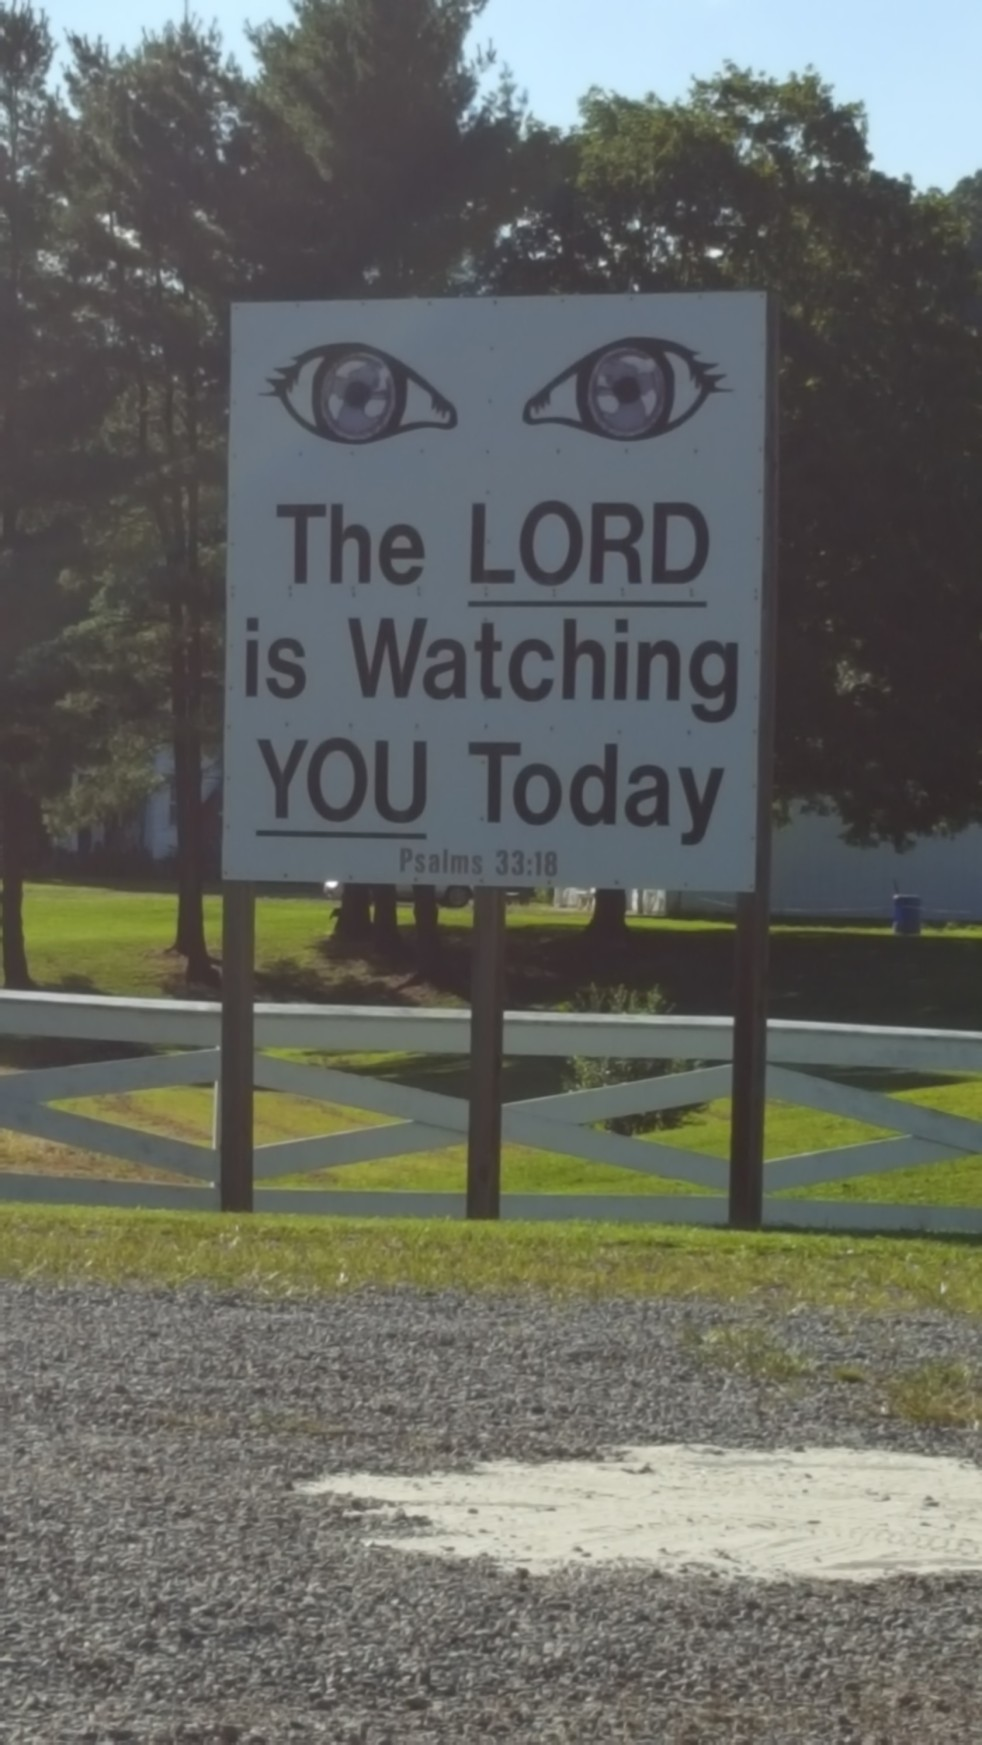 The LORD is watching YOU today